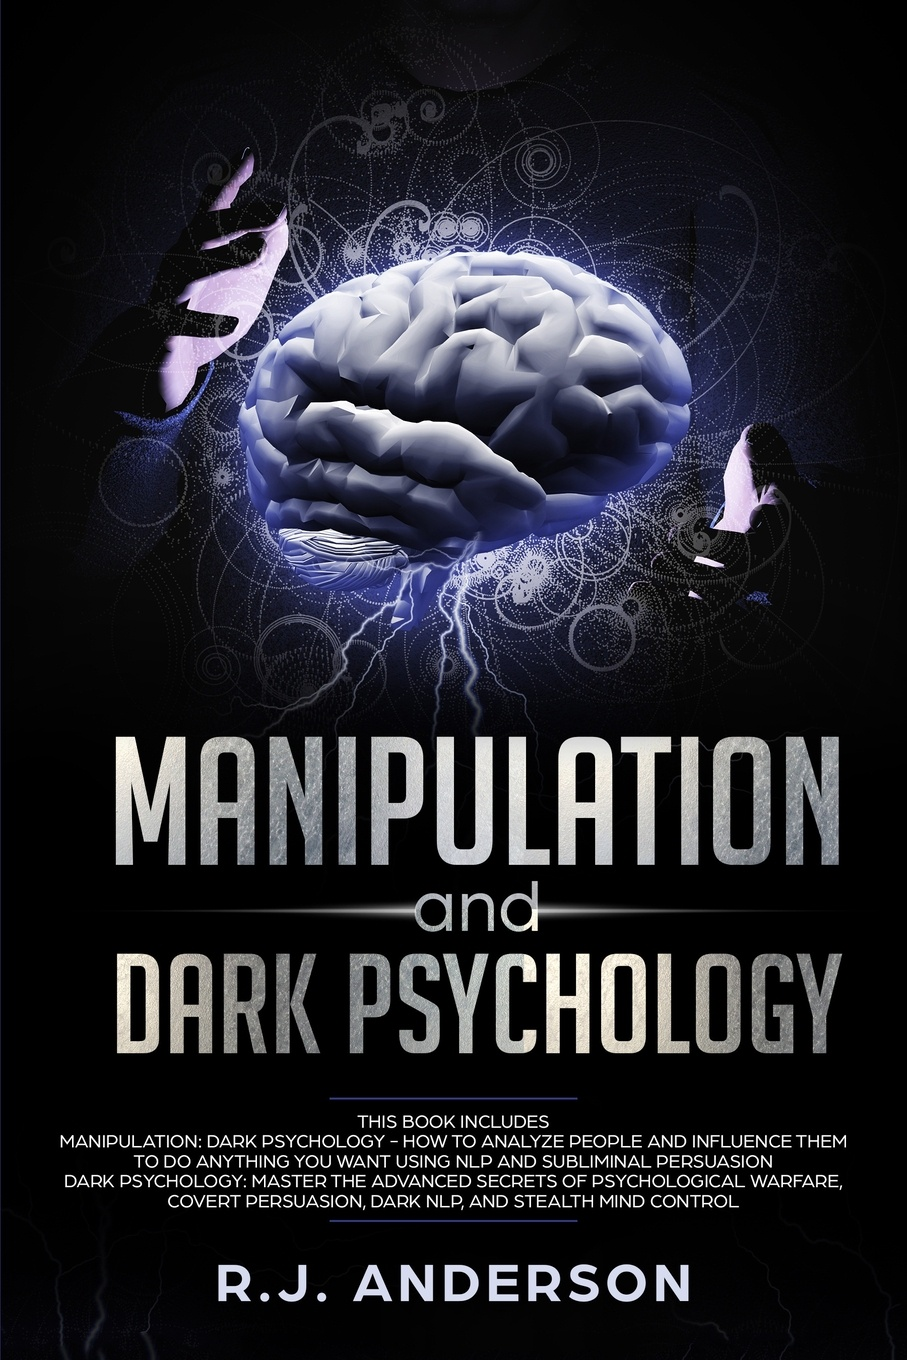 Manipulation and Dark Psychology. Manipulation and Dark Psychology: 2 Manuscripts - How to Analyze People and Influence Them to Do Anything You Want ... NLP, and Dark Cognitive Behavioral Therapy